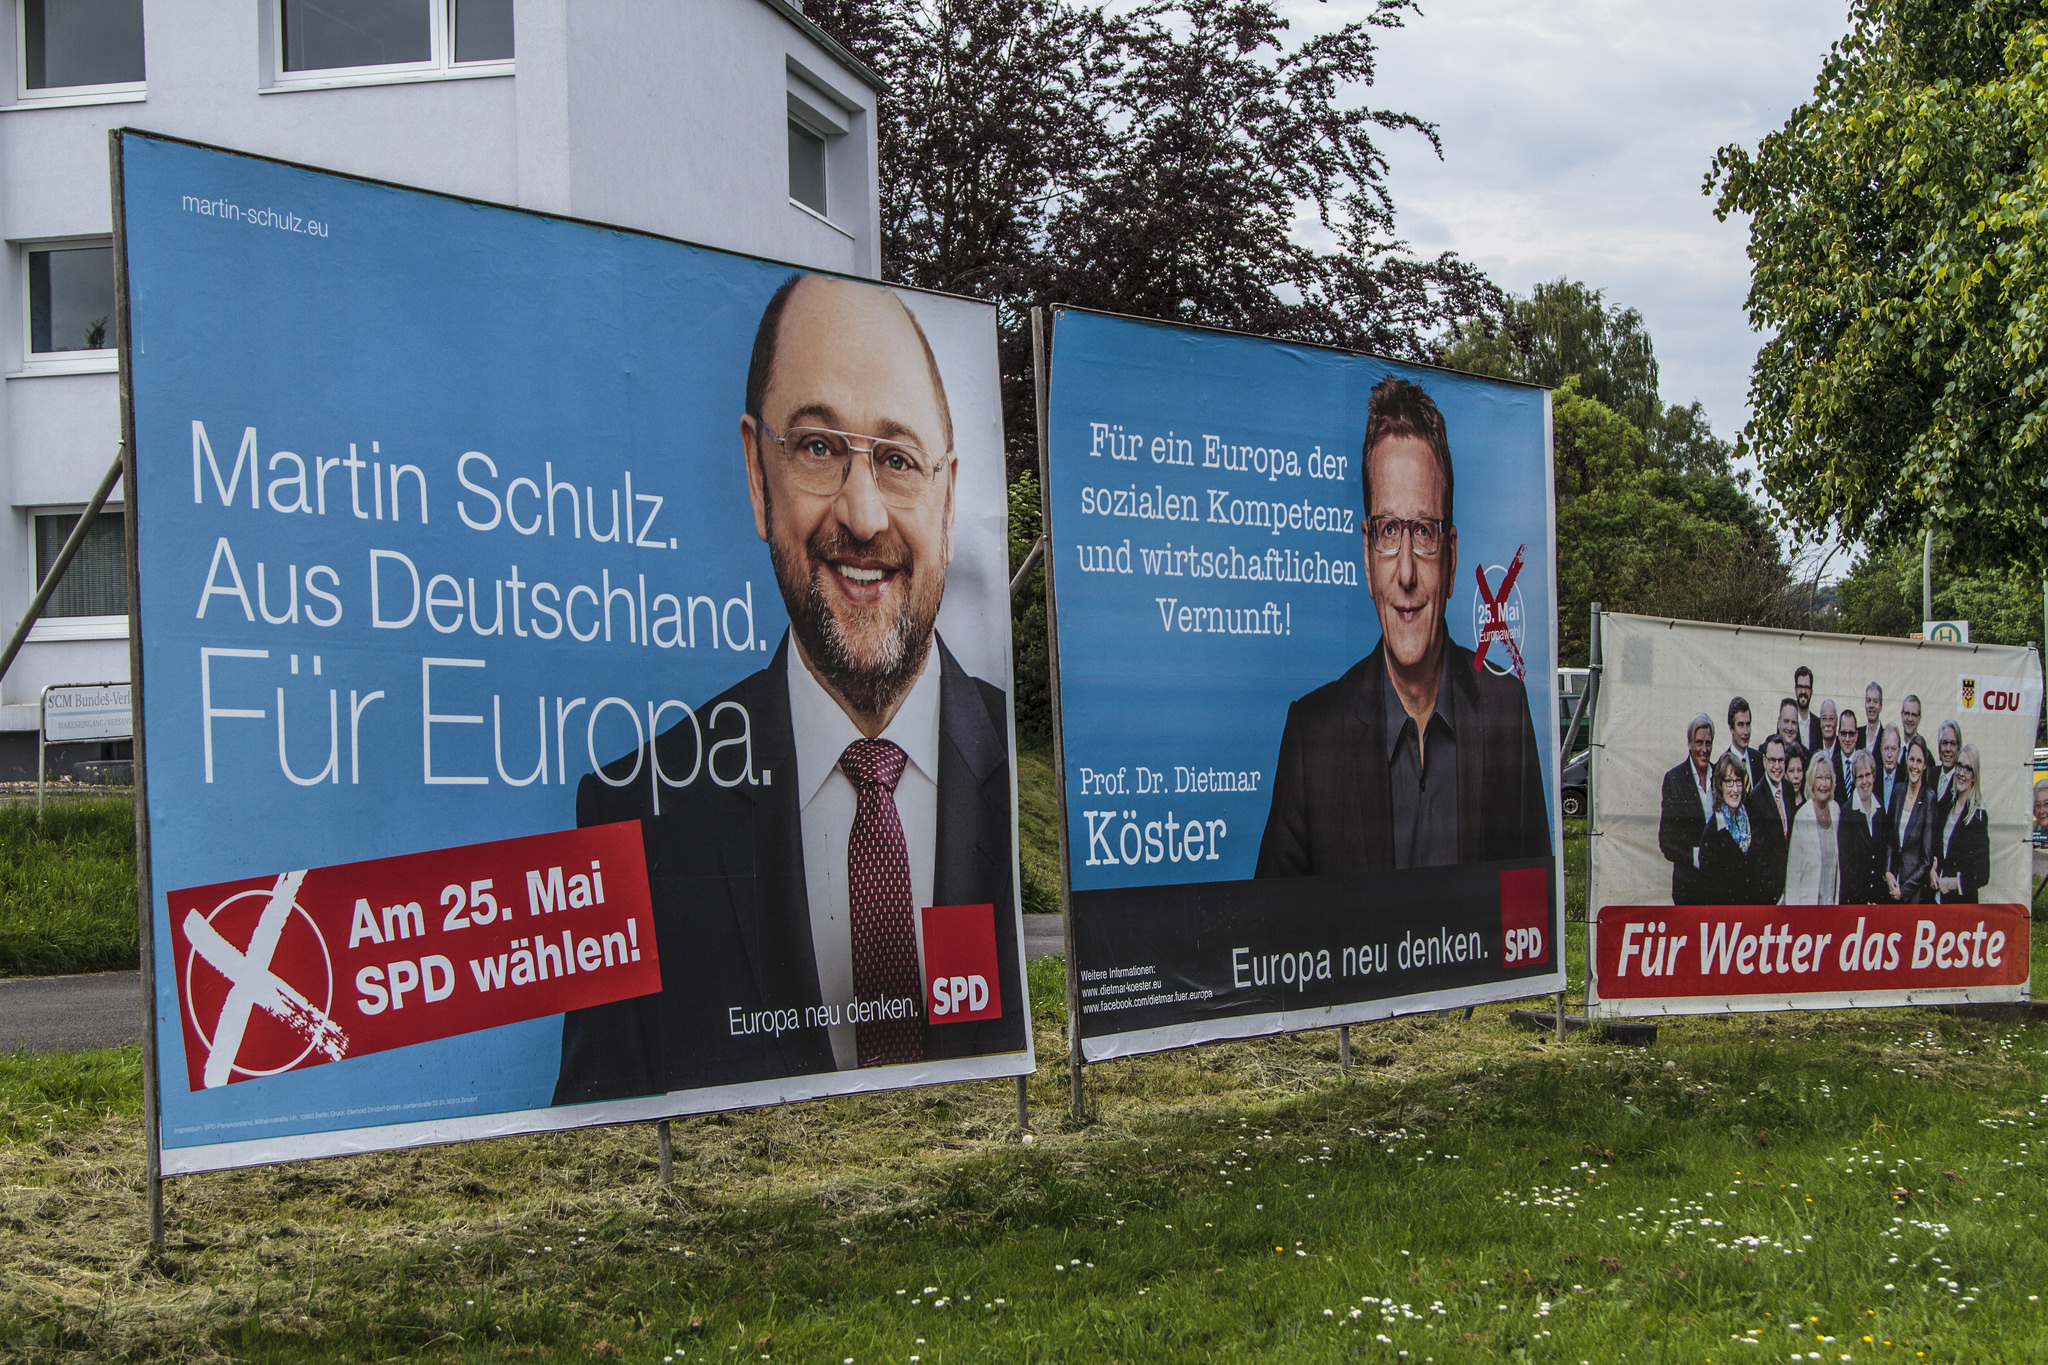 European election top candidates like Martin Schulz, hoped putting a face on the election would motivate voters to polls. Germany, 2014 [Travelswiss1/Flickr]